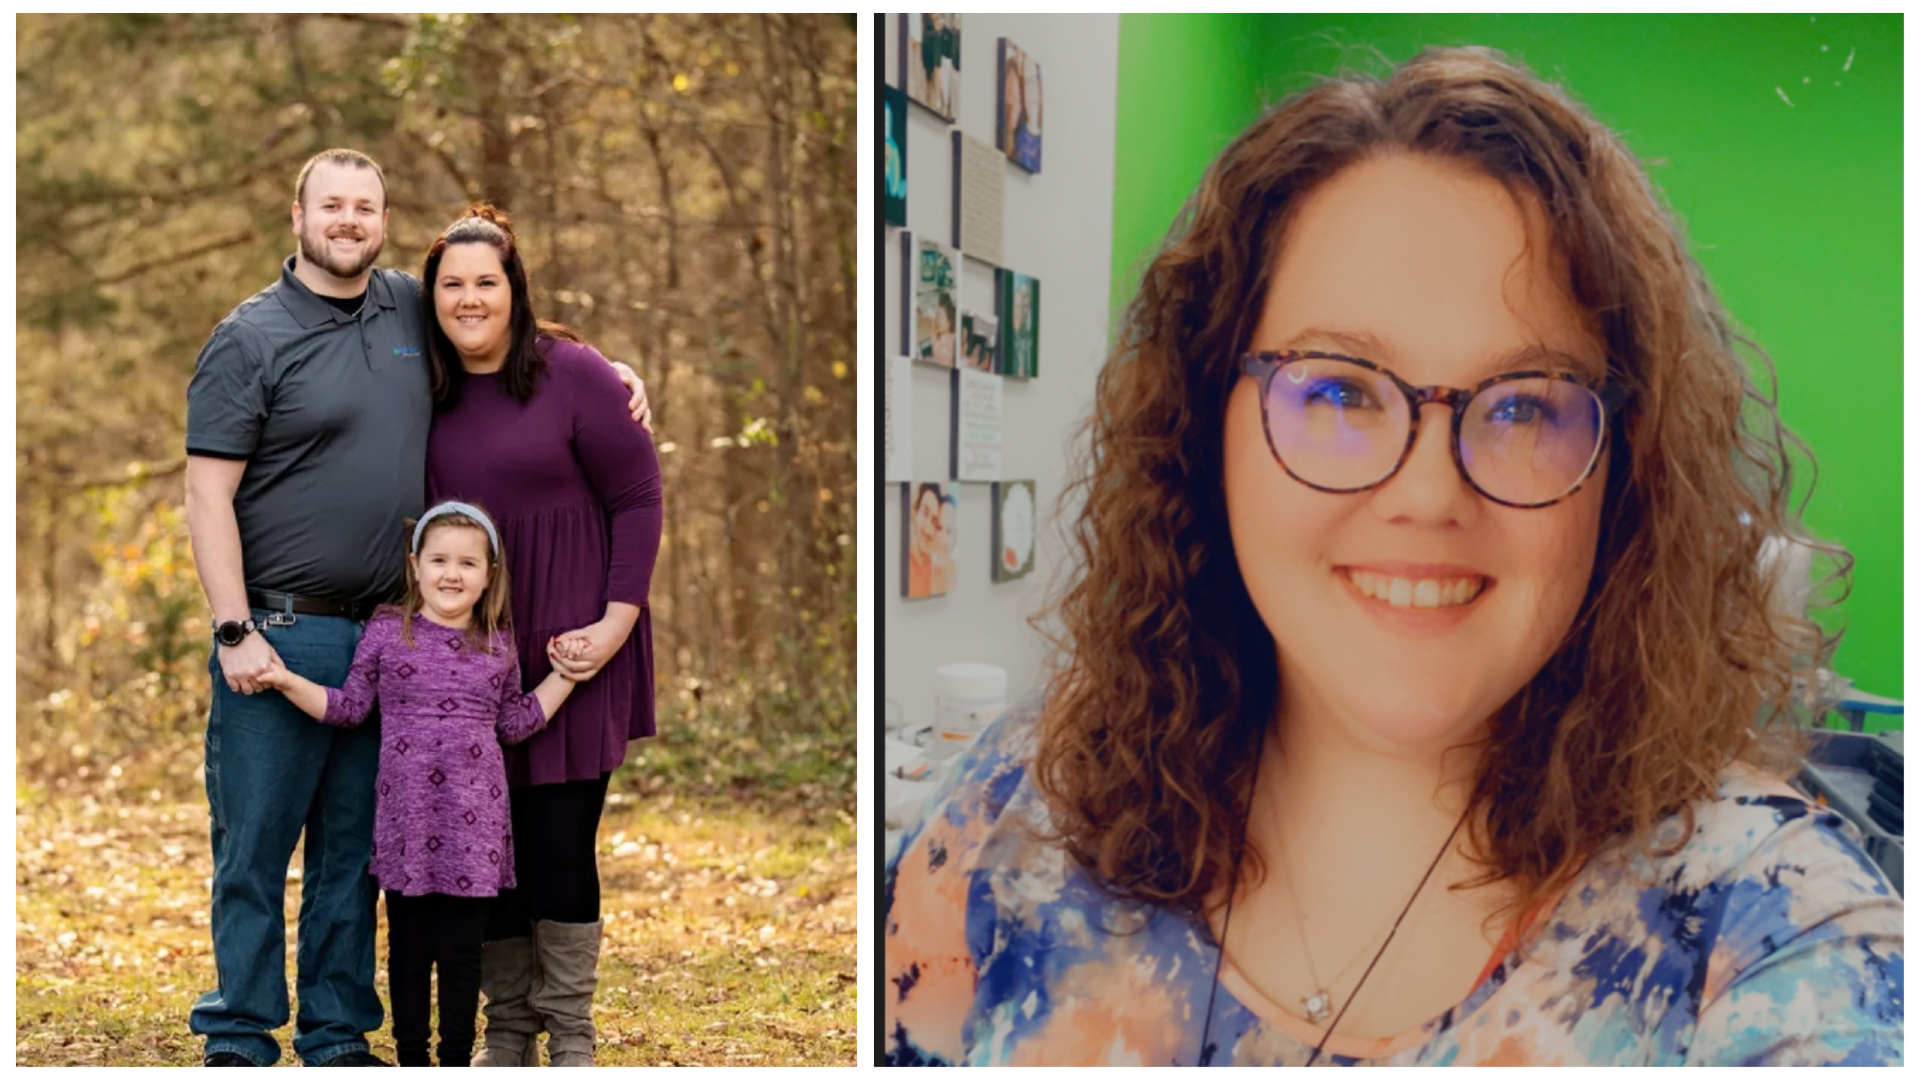 Migraine is one of the most disabling illnesses out there. Just ask Ashley Haynes, whose chronic head pain left her physically and emotionally drained. Thankfully, relief is possible.